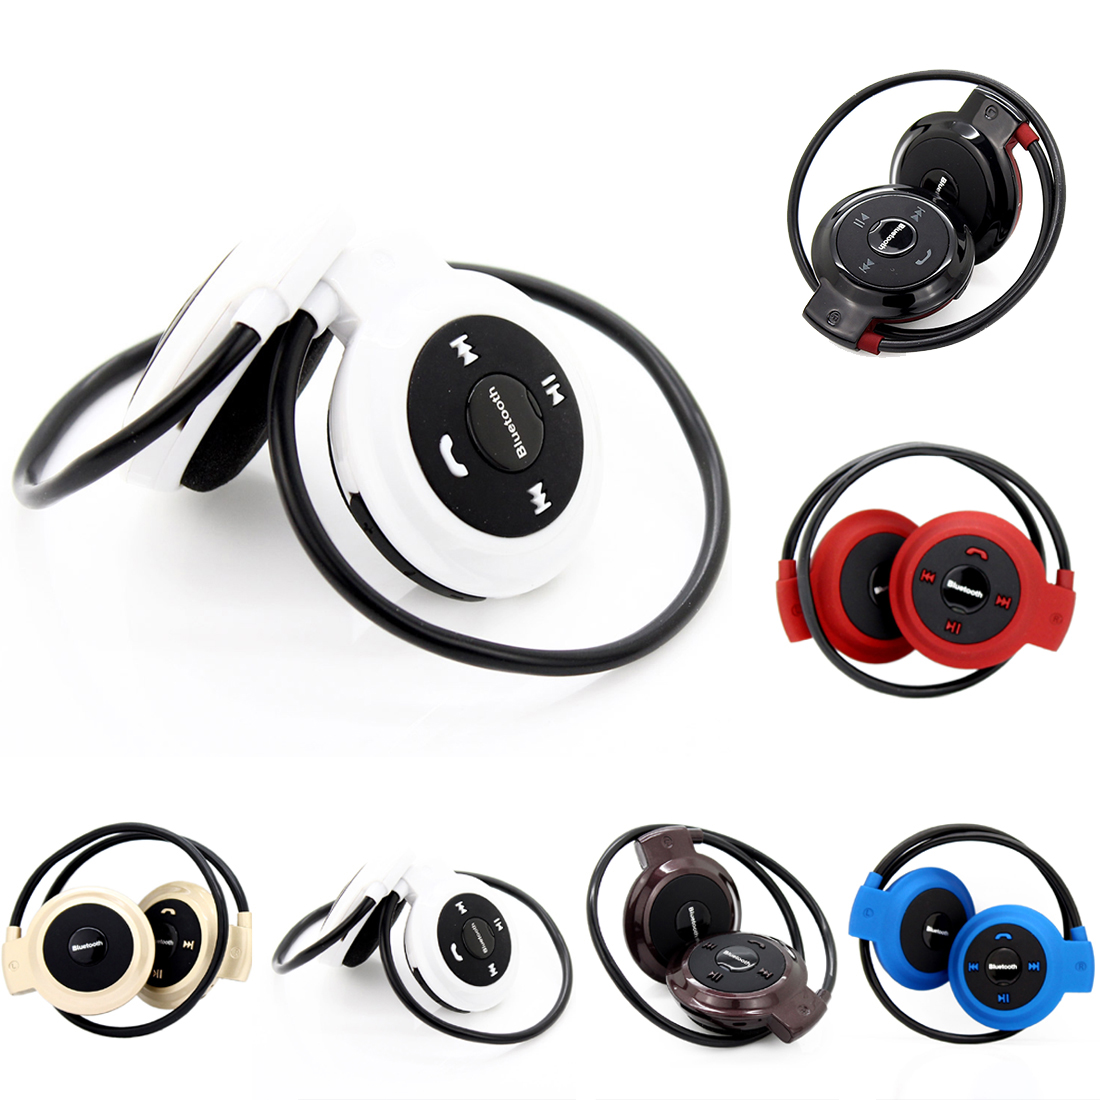 Marsnaska TF+FM+MP3 Class II mini sport wireless headphones Music Stereo Bluetooth Earphones Headsets hands-free call for iphone image